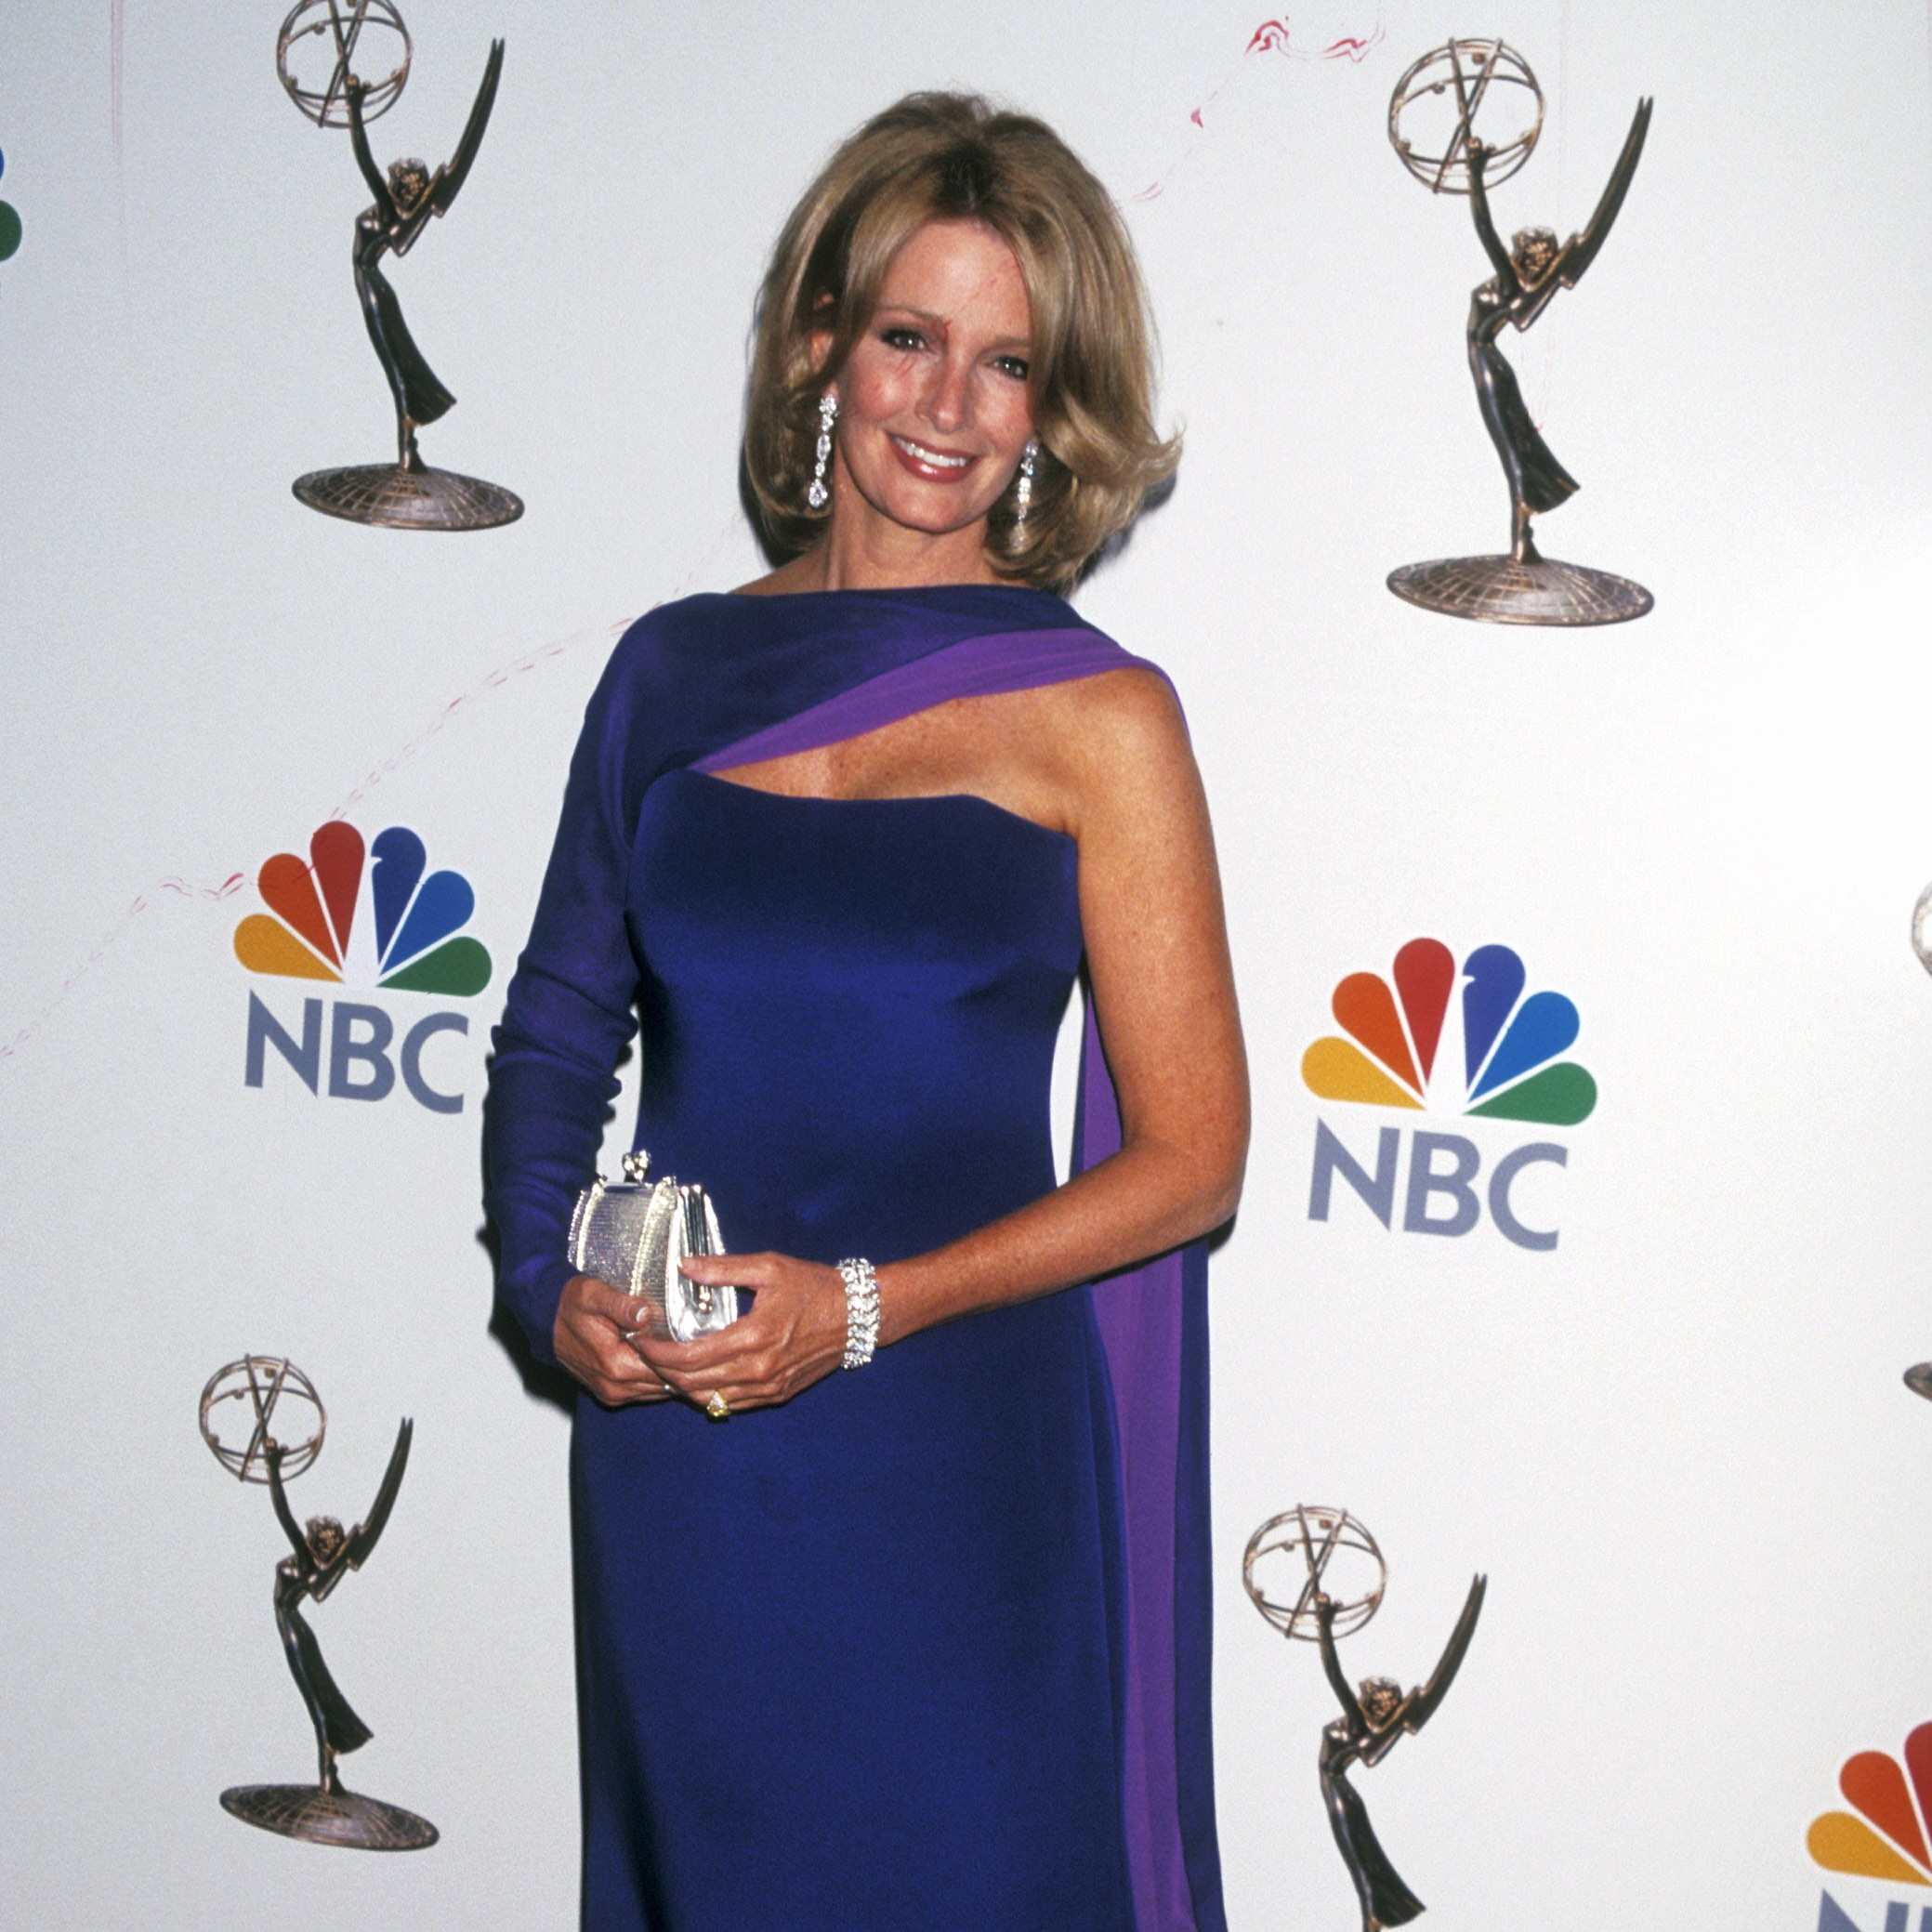 NEW YORK CITY - MAY 15:   Actress Deidre Hall attends the 25th Annual Daytime Emmy Awards on May 15, 1998 at Radio City Music Hall in New York City. (Photo by Ron Galella/WireImage)